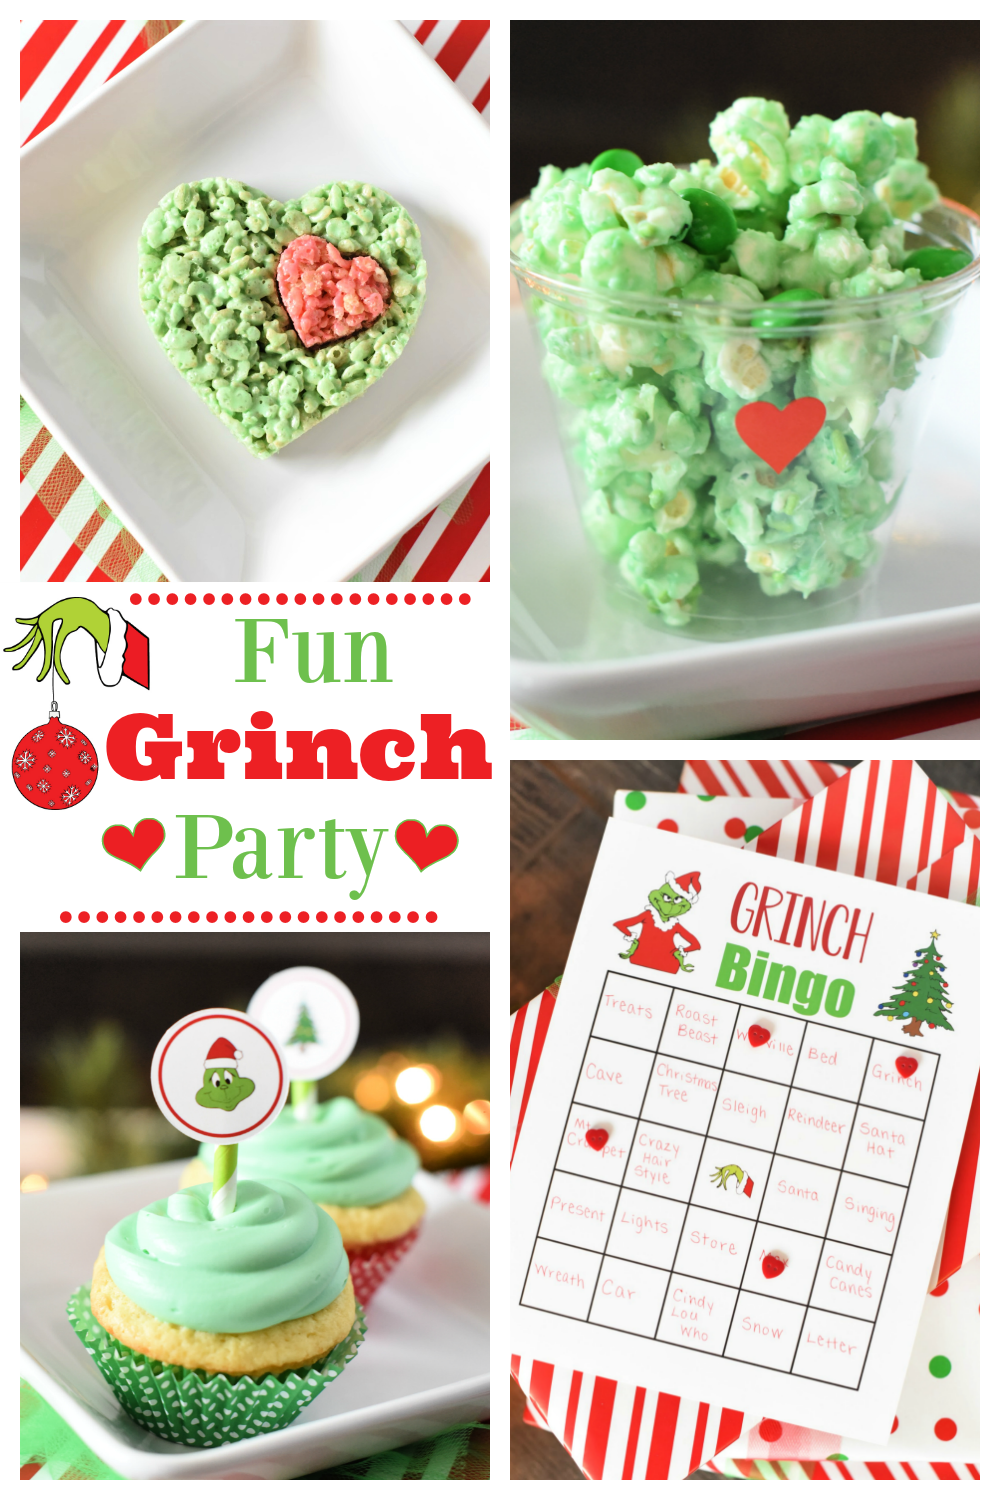 How to Throw a Grinch Party-This fun Grinch themed Christmas party is super fun to throw! Watch the Grinch movie while you eat these great treats, play these fun games and have this fabulous holiday party! #thegrinch #christmasparty #christmas #christmaspartyideas